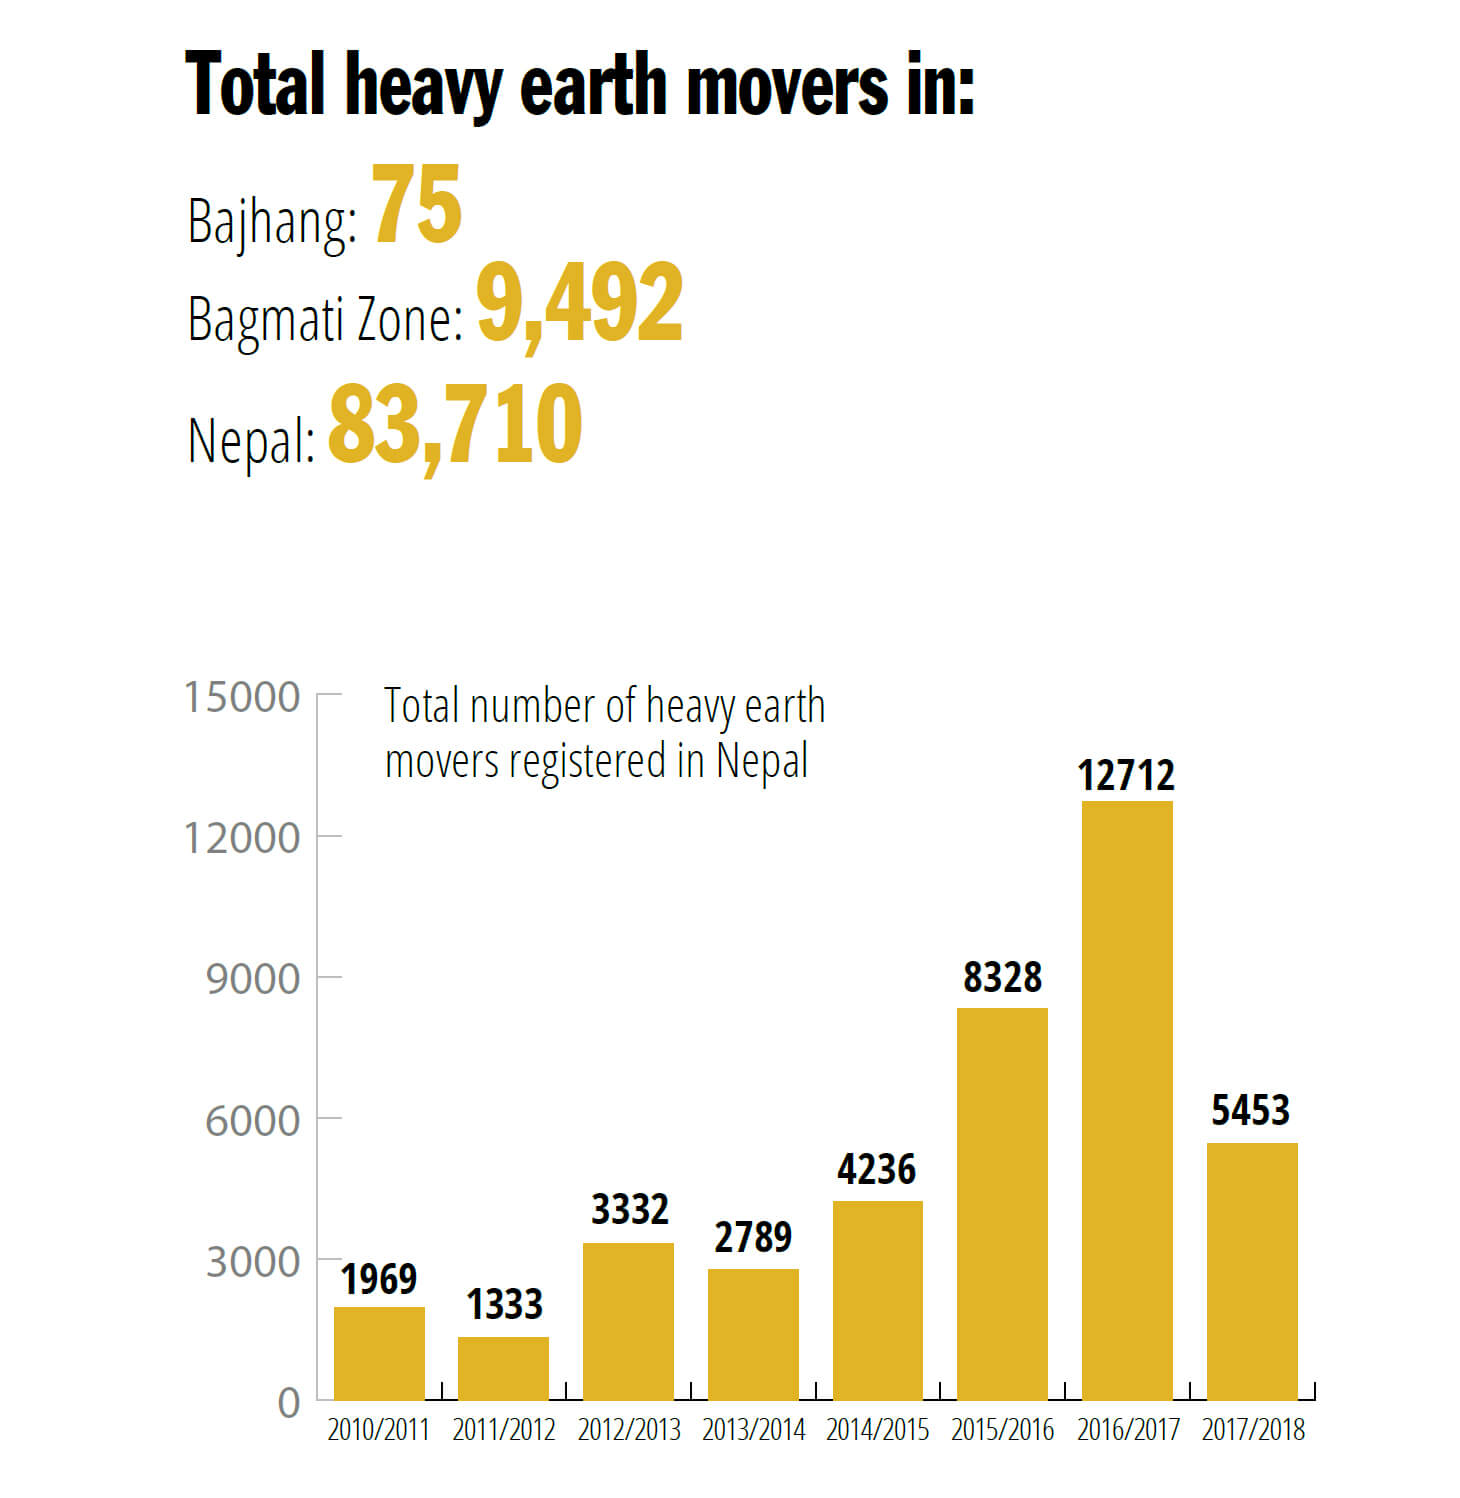 Total-number-of-heavy-earth-movers-in-Nepal